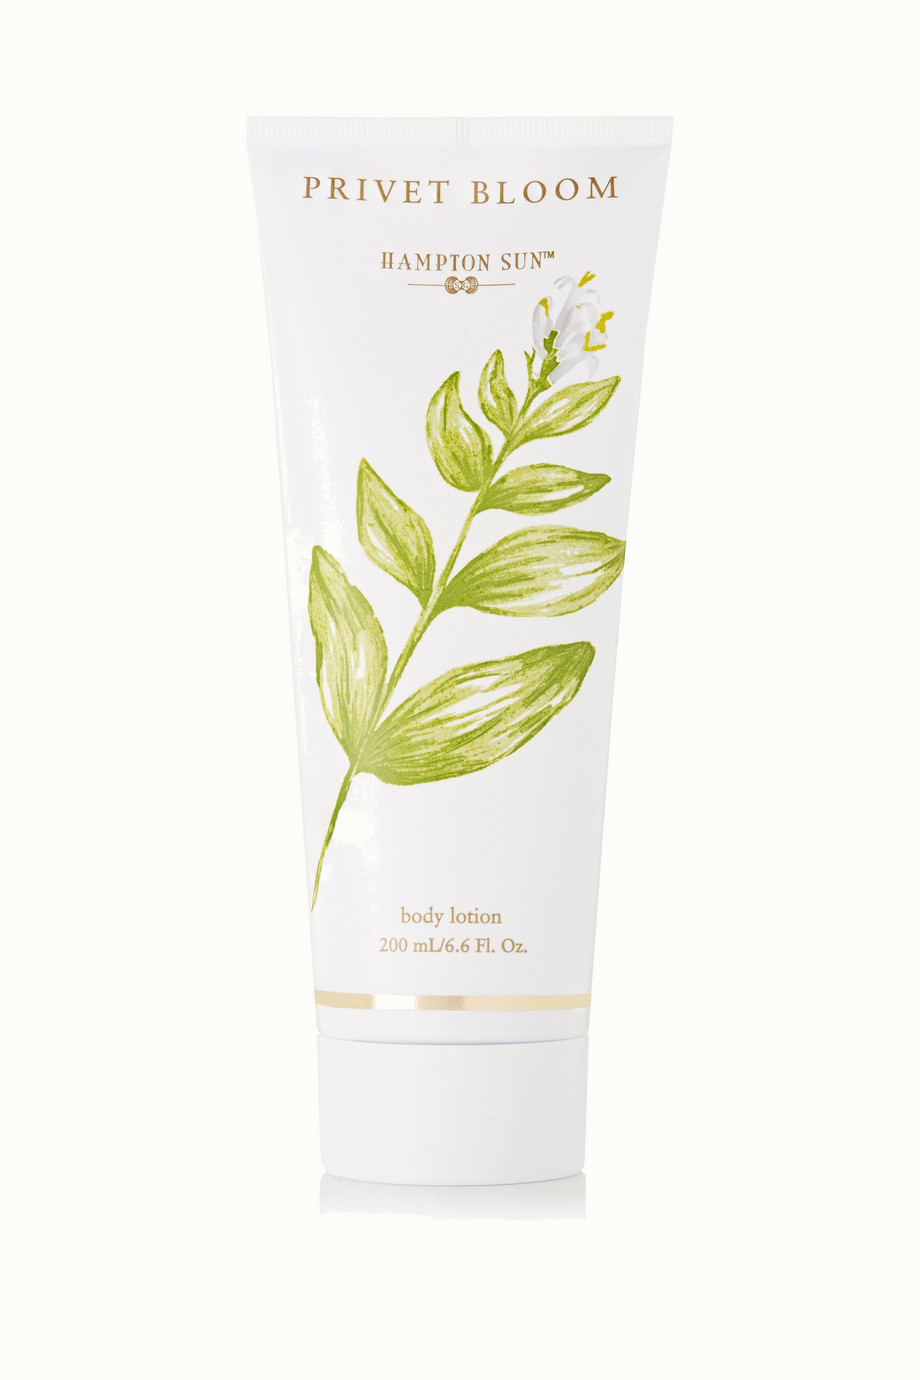 Hampton Sun Privet Bloom Body Lotion, 200ml